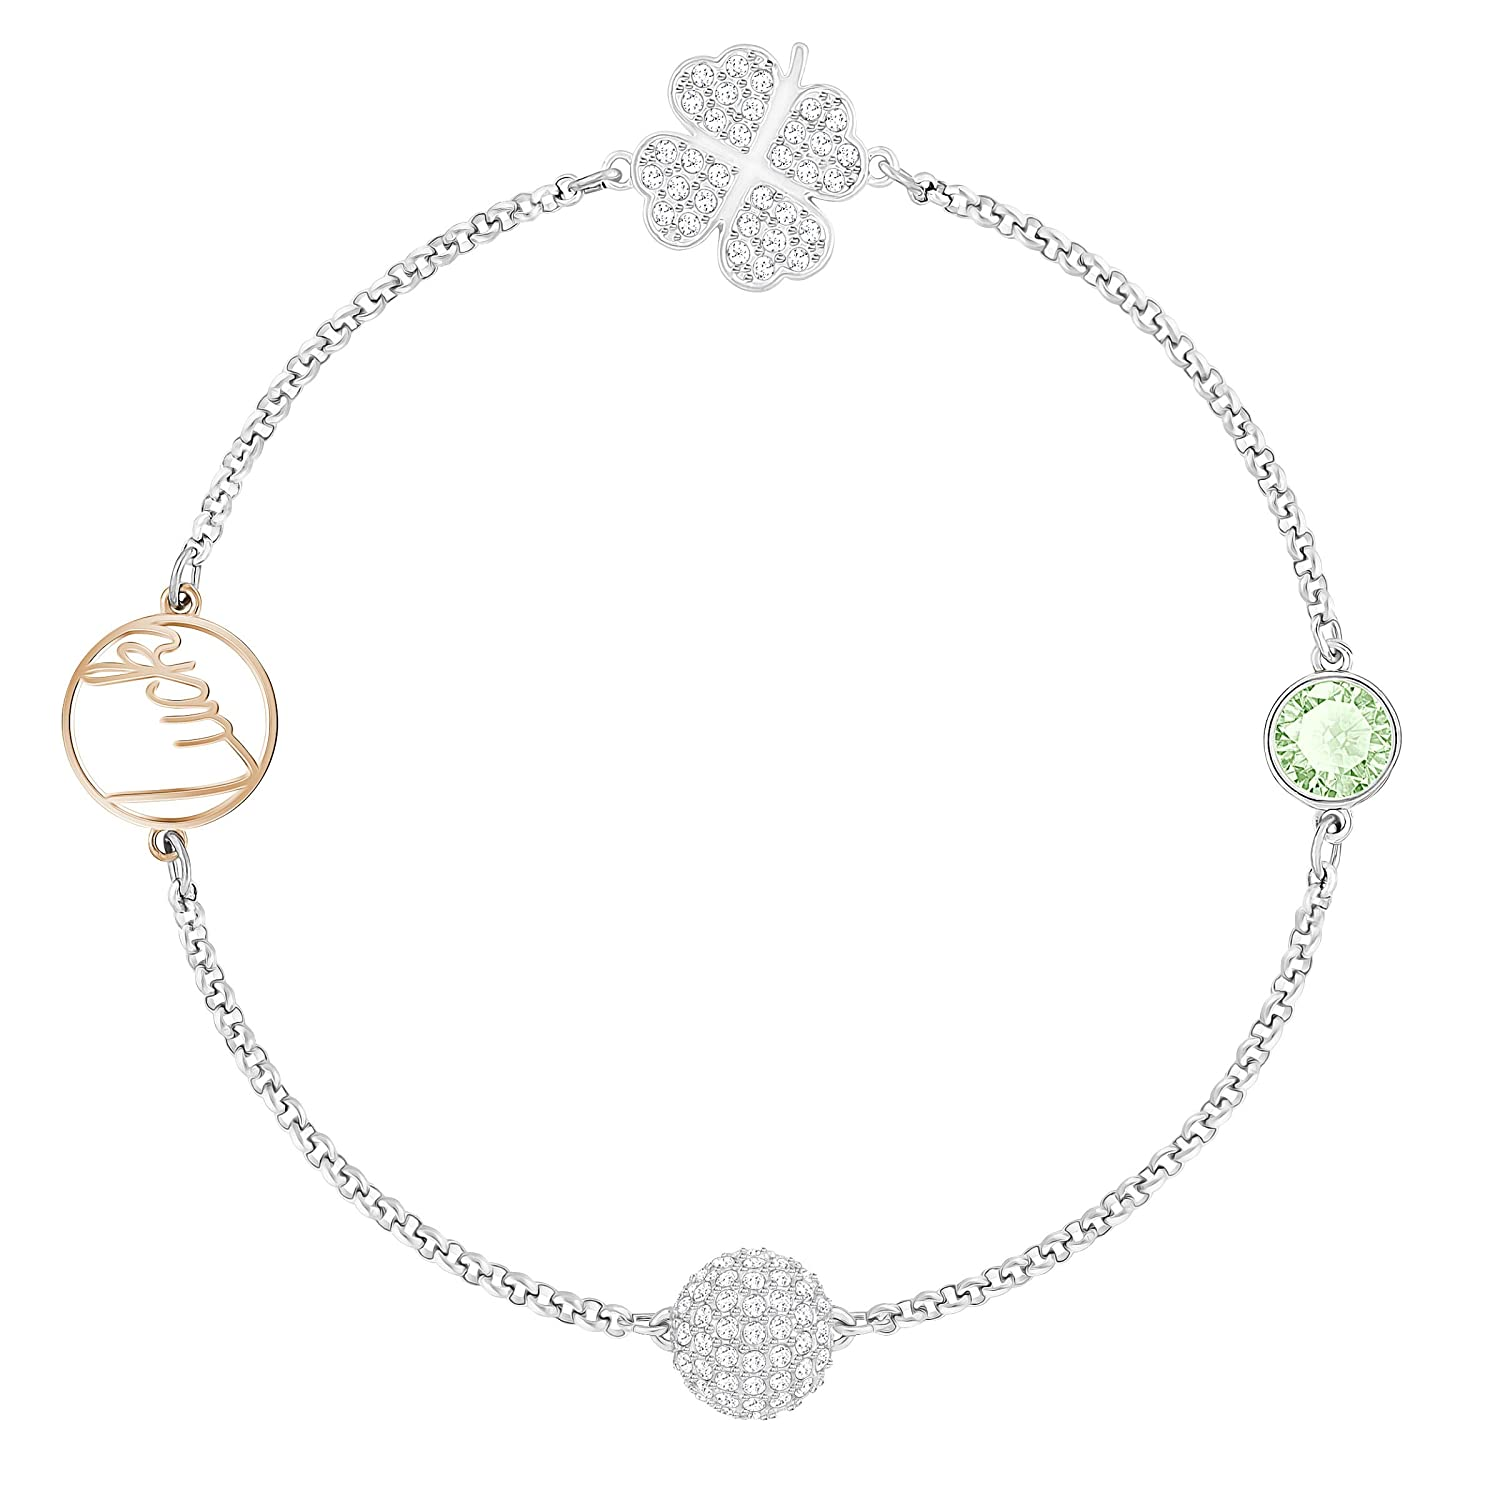 cb6b284254436 Swarovski Remix Collection Clover, Green, Mixed Plating: Amazon.co ...